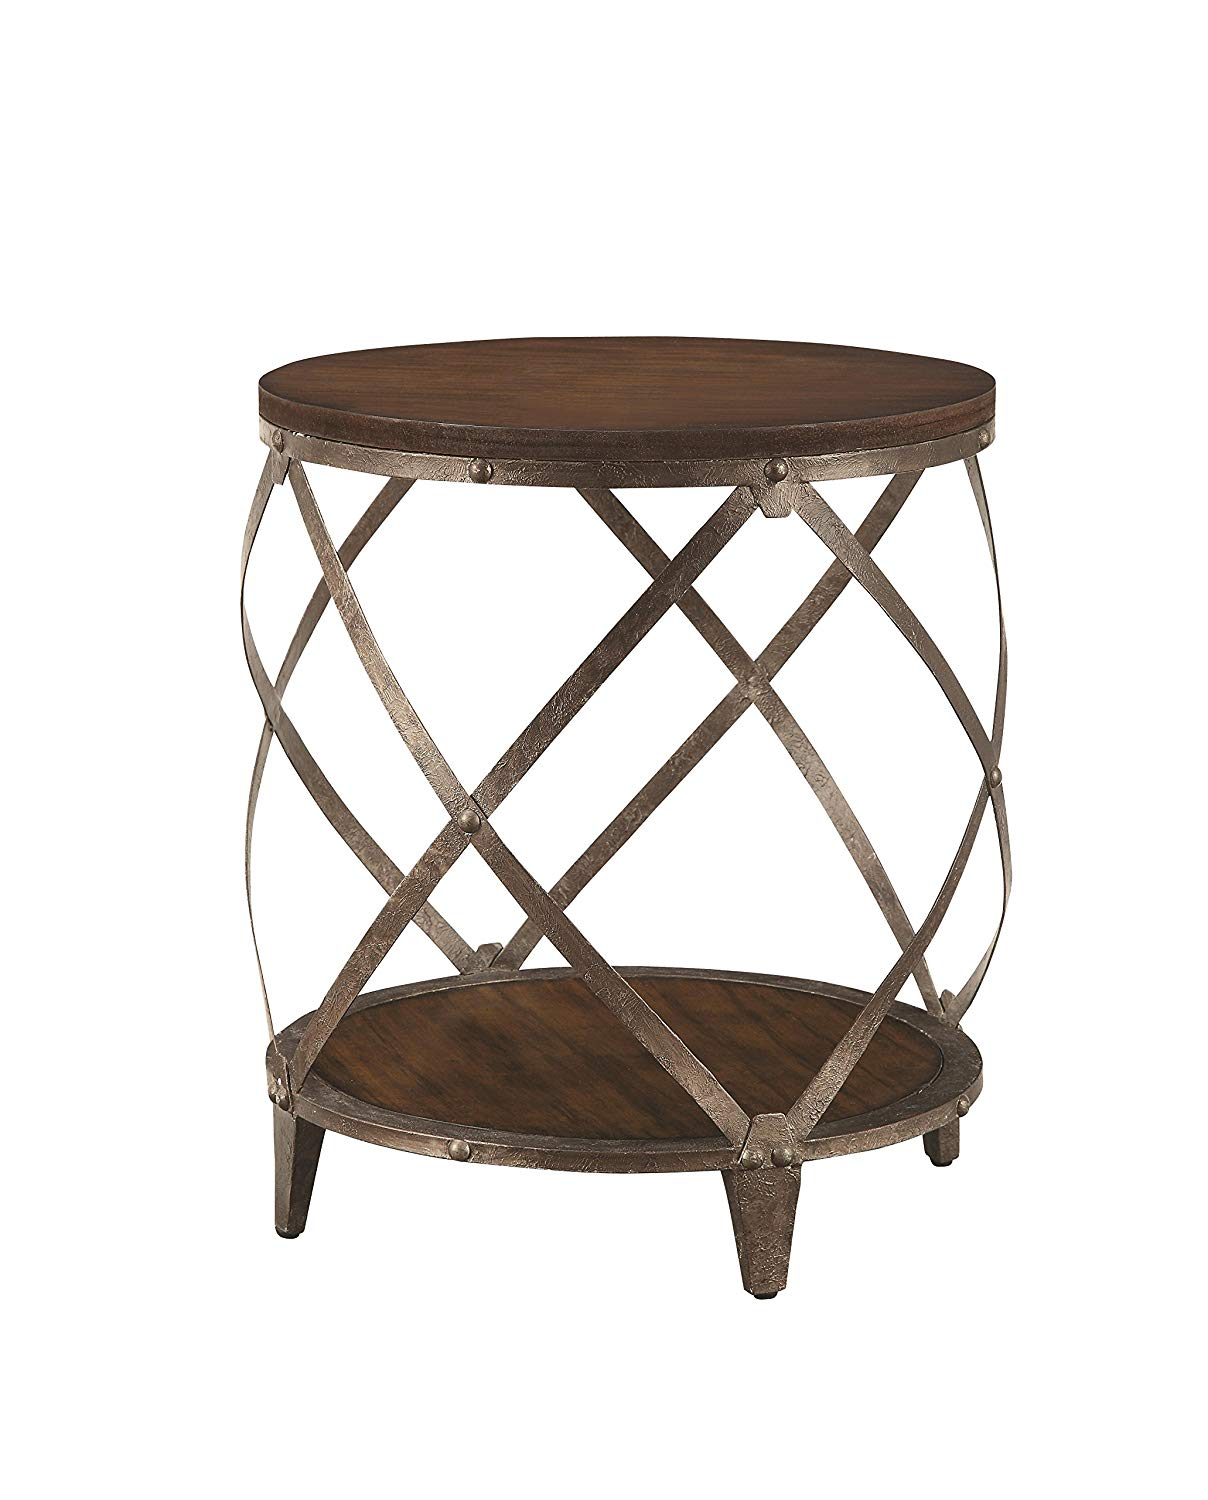 waterbury silver accent table tables colors aharney coaster casual brown kitchen dining knurl nesting metal accents for furniture blue stained glass lamp nightstand tall mirrored